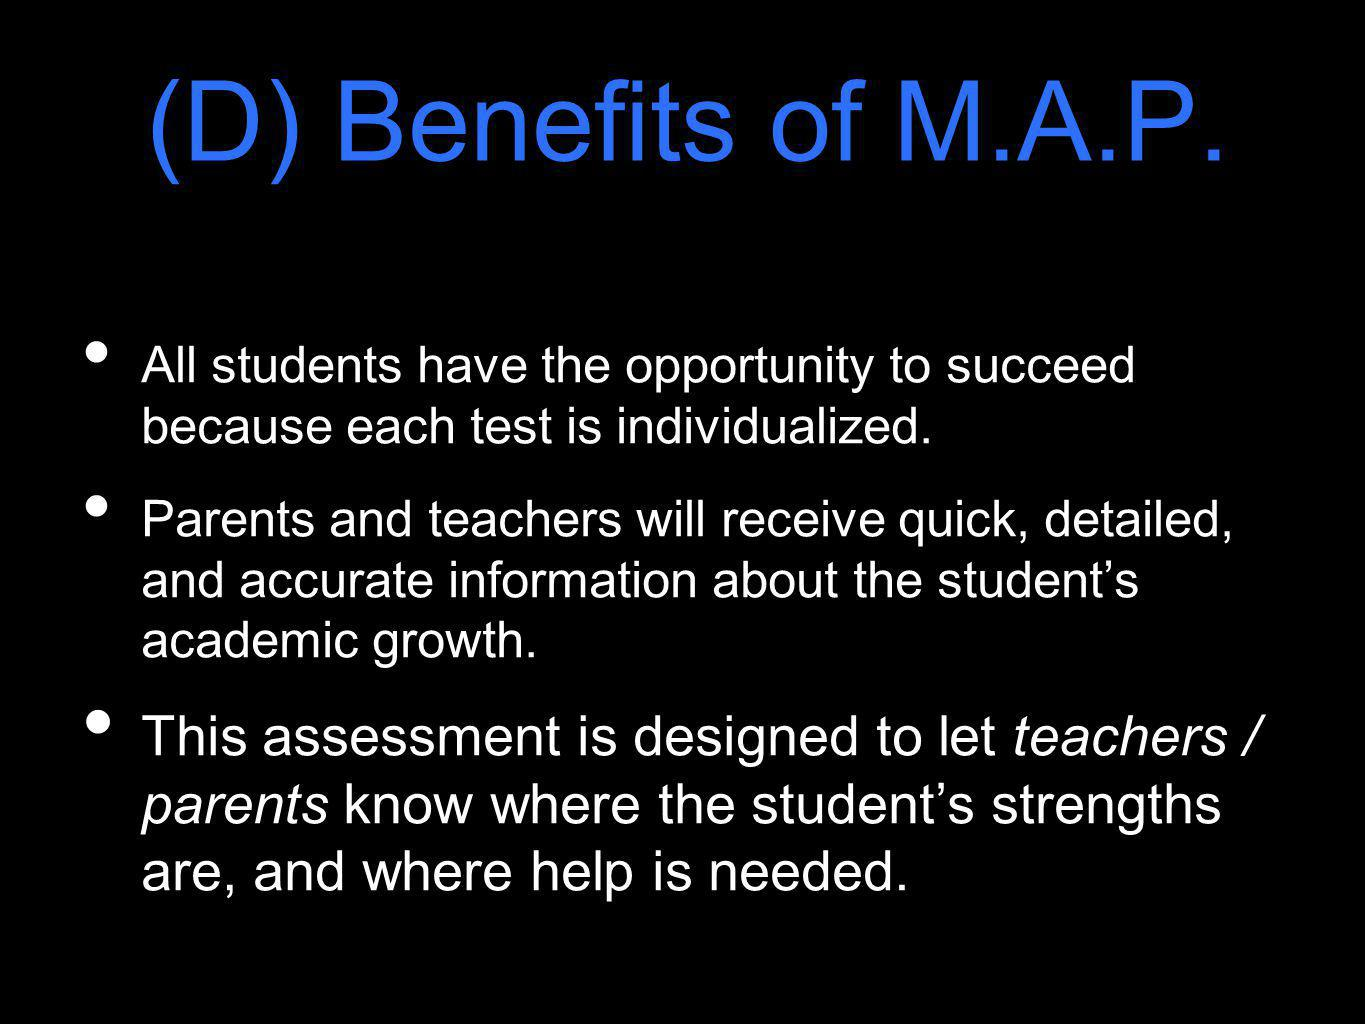 (D) Benefits of M.A.P. All students have the opportunity to succeed because each test is individualized.